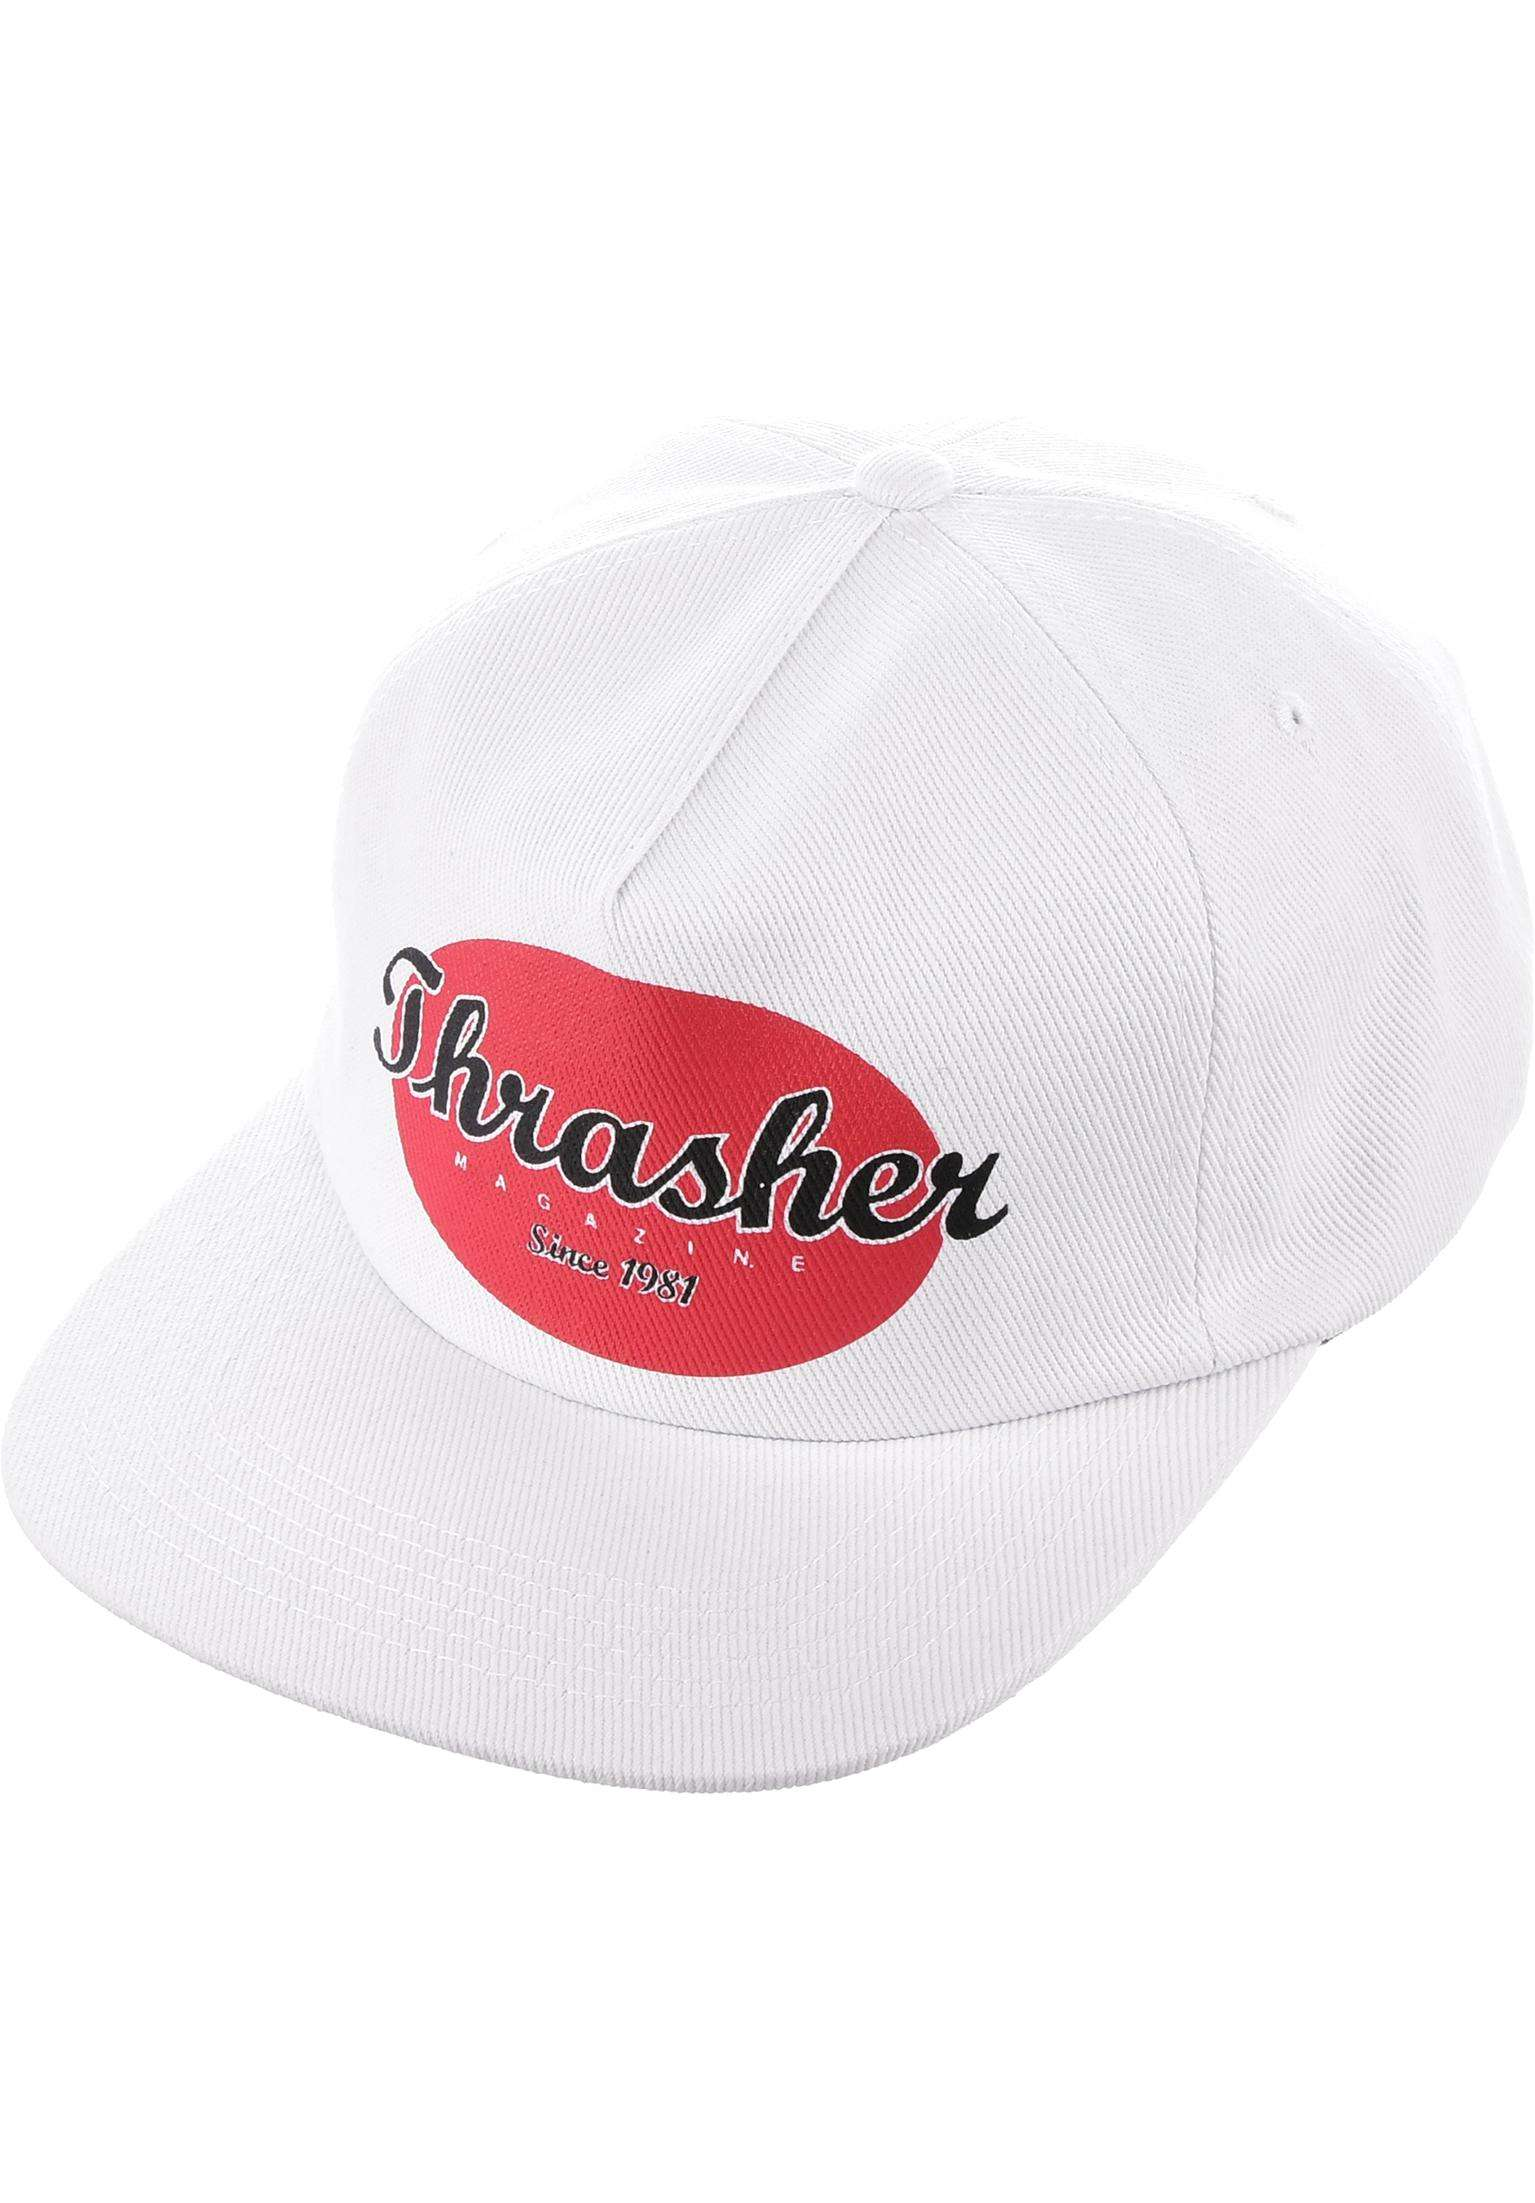 6e793b01cc1 Oval Snapback Thrasher Caps in white for Men